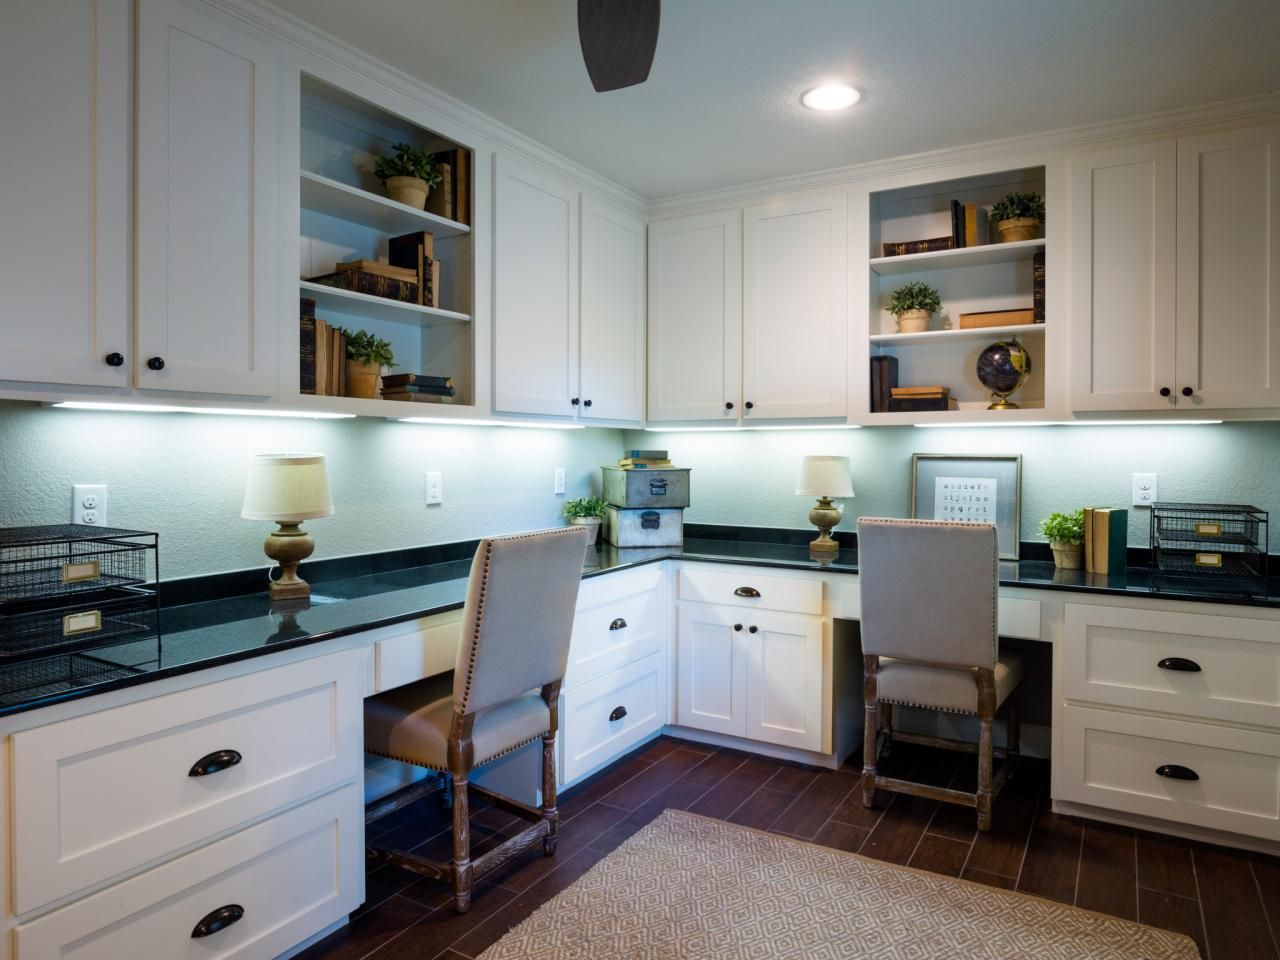 Hgtv fixer upper galley kitchen - Designers Chip And Joanna Gaines Wanted This Home Office To Have A Similar Style To The Home S Kitchen With White Cabinets And A Black